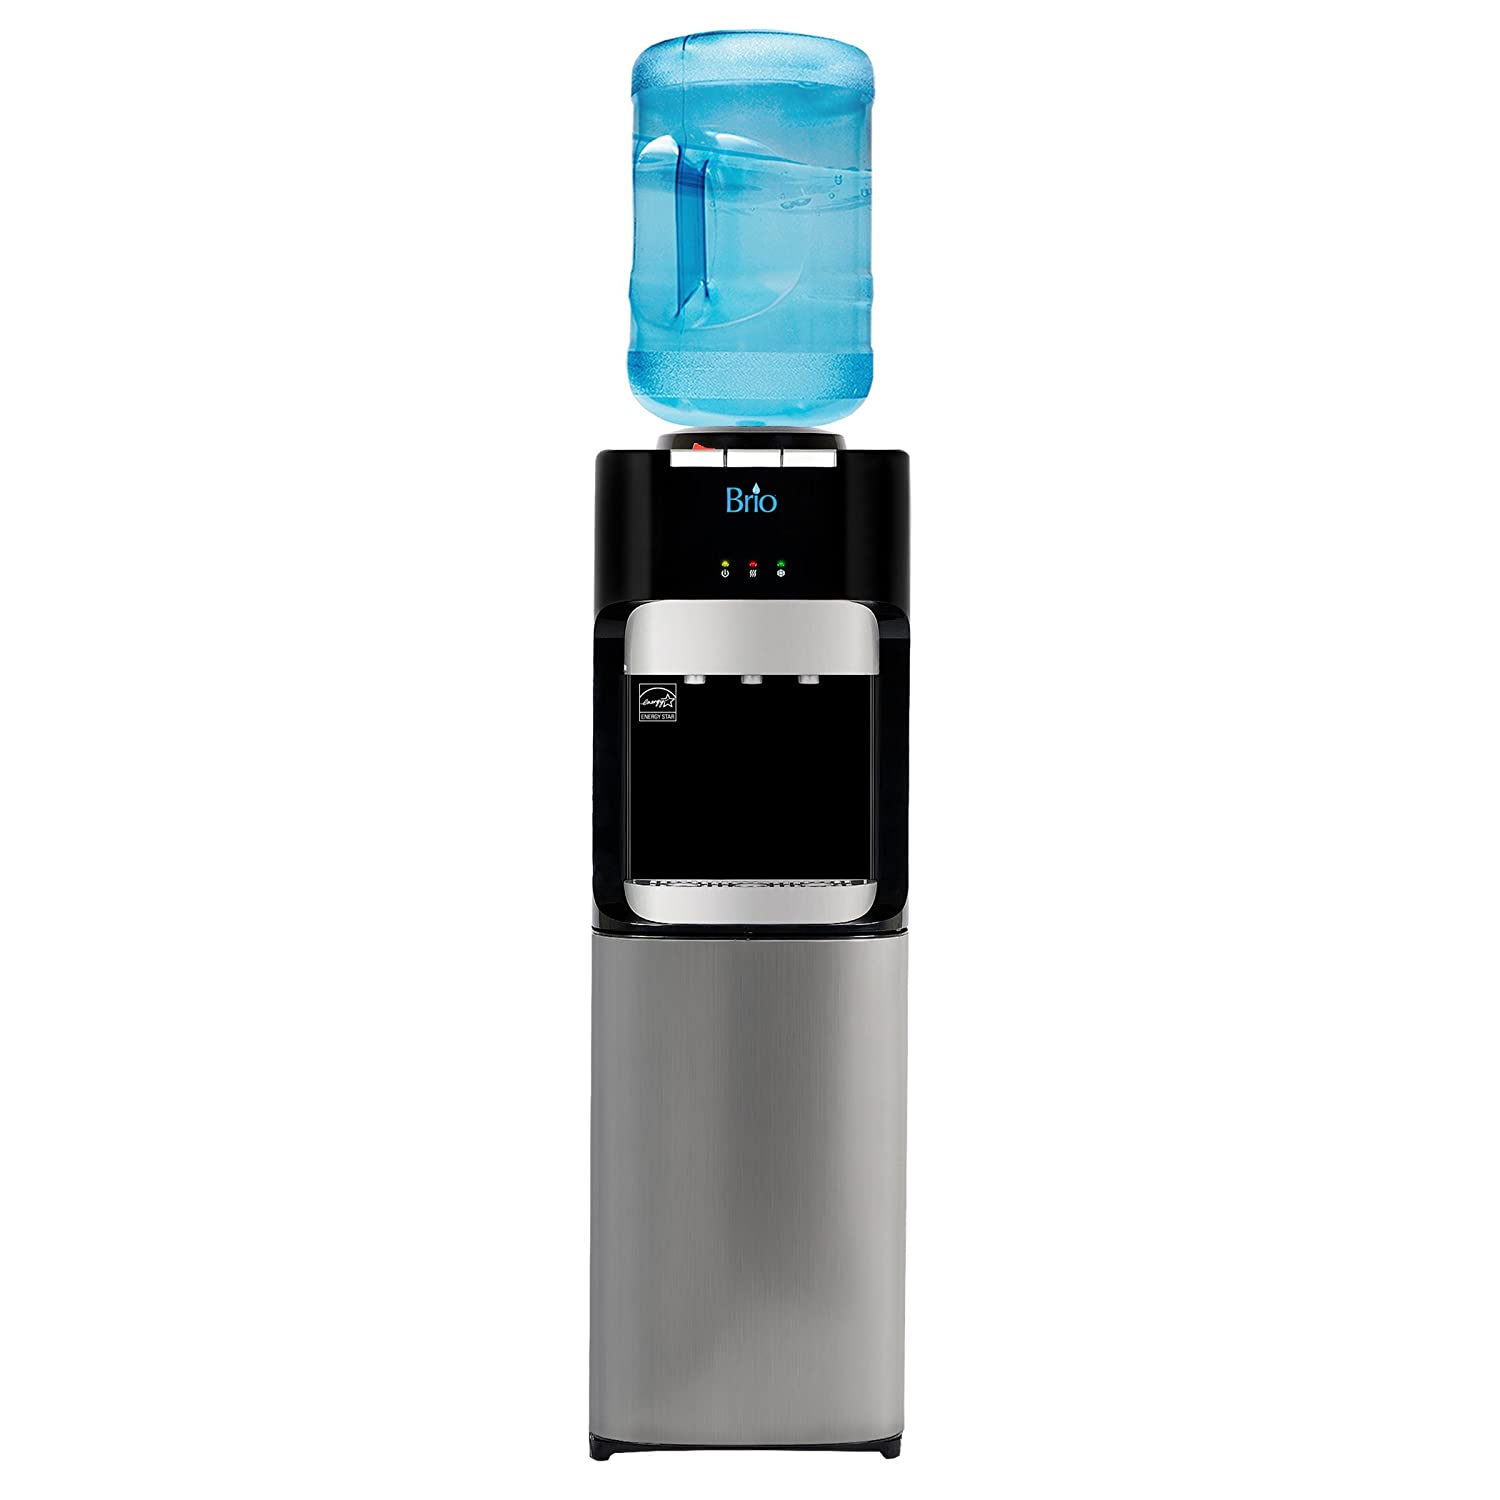 Brio Essential Series Top Load Hot, Cold & Room Water Cooler Dispenser Downtown Wholesalers Inc. cltl420